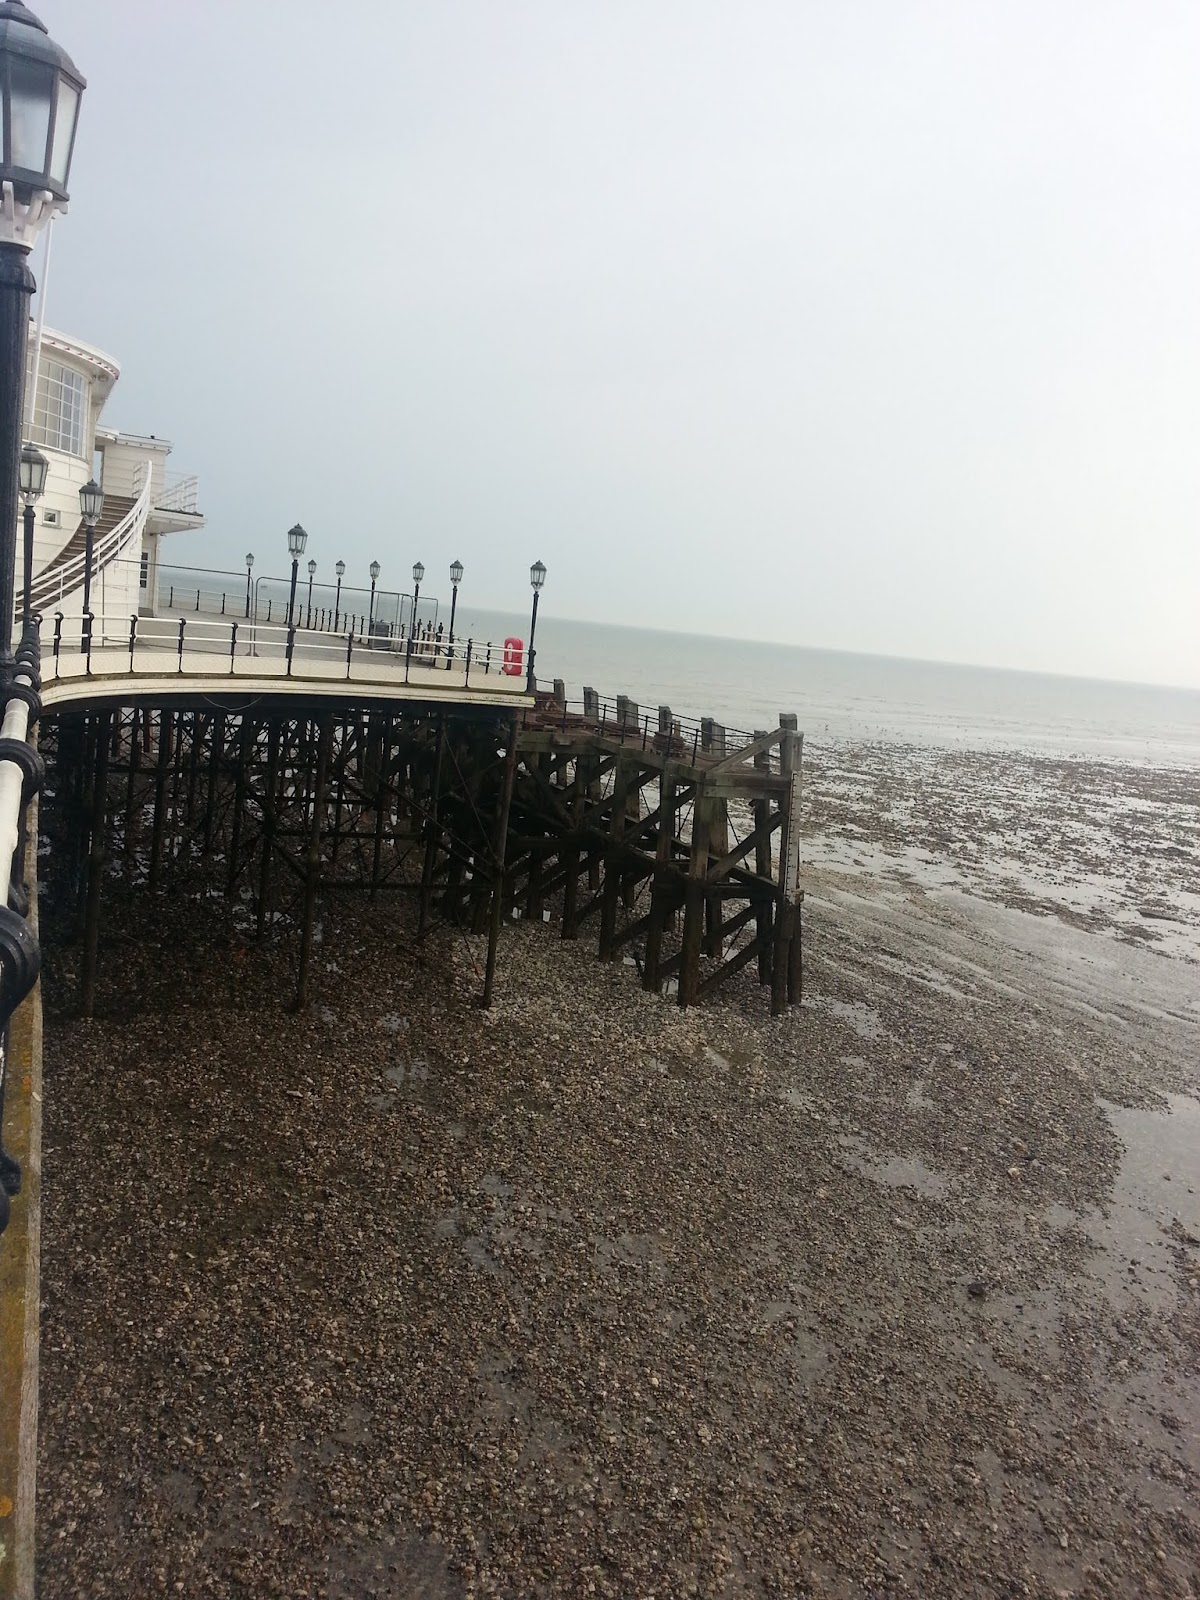 20140330 165511 4 Worthing Pier at low tide